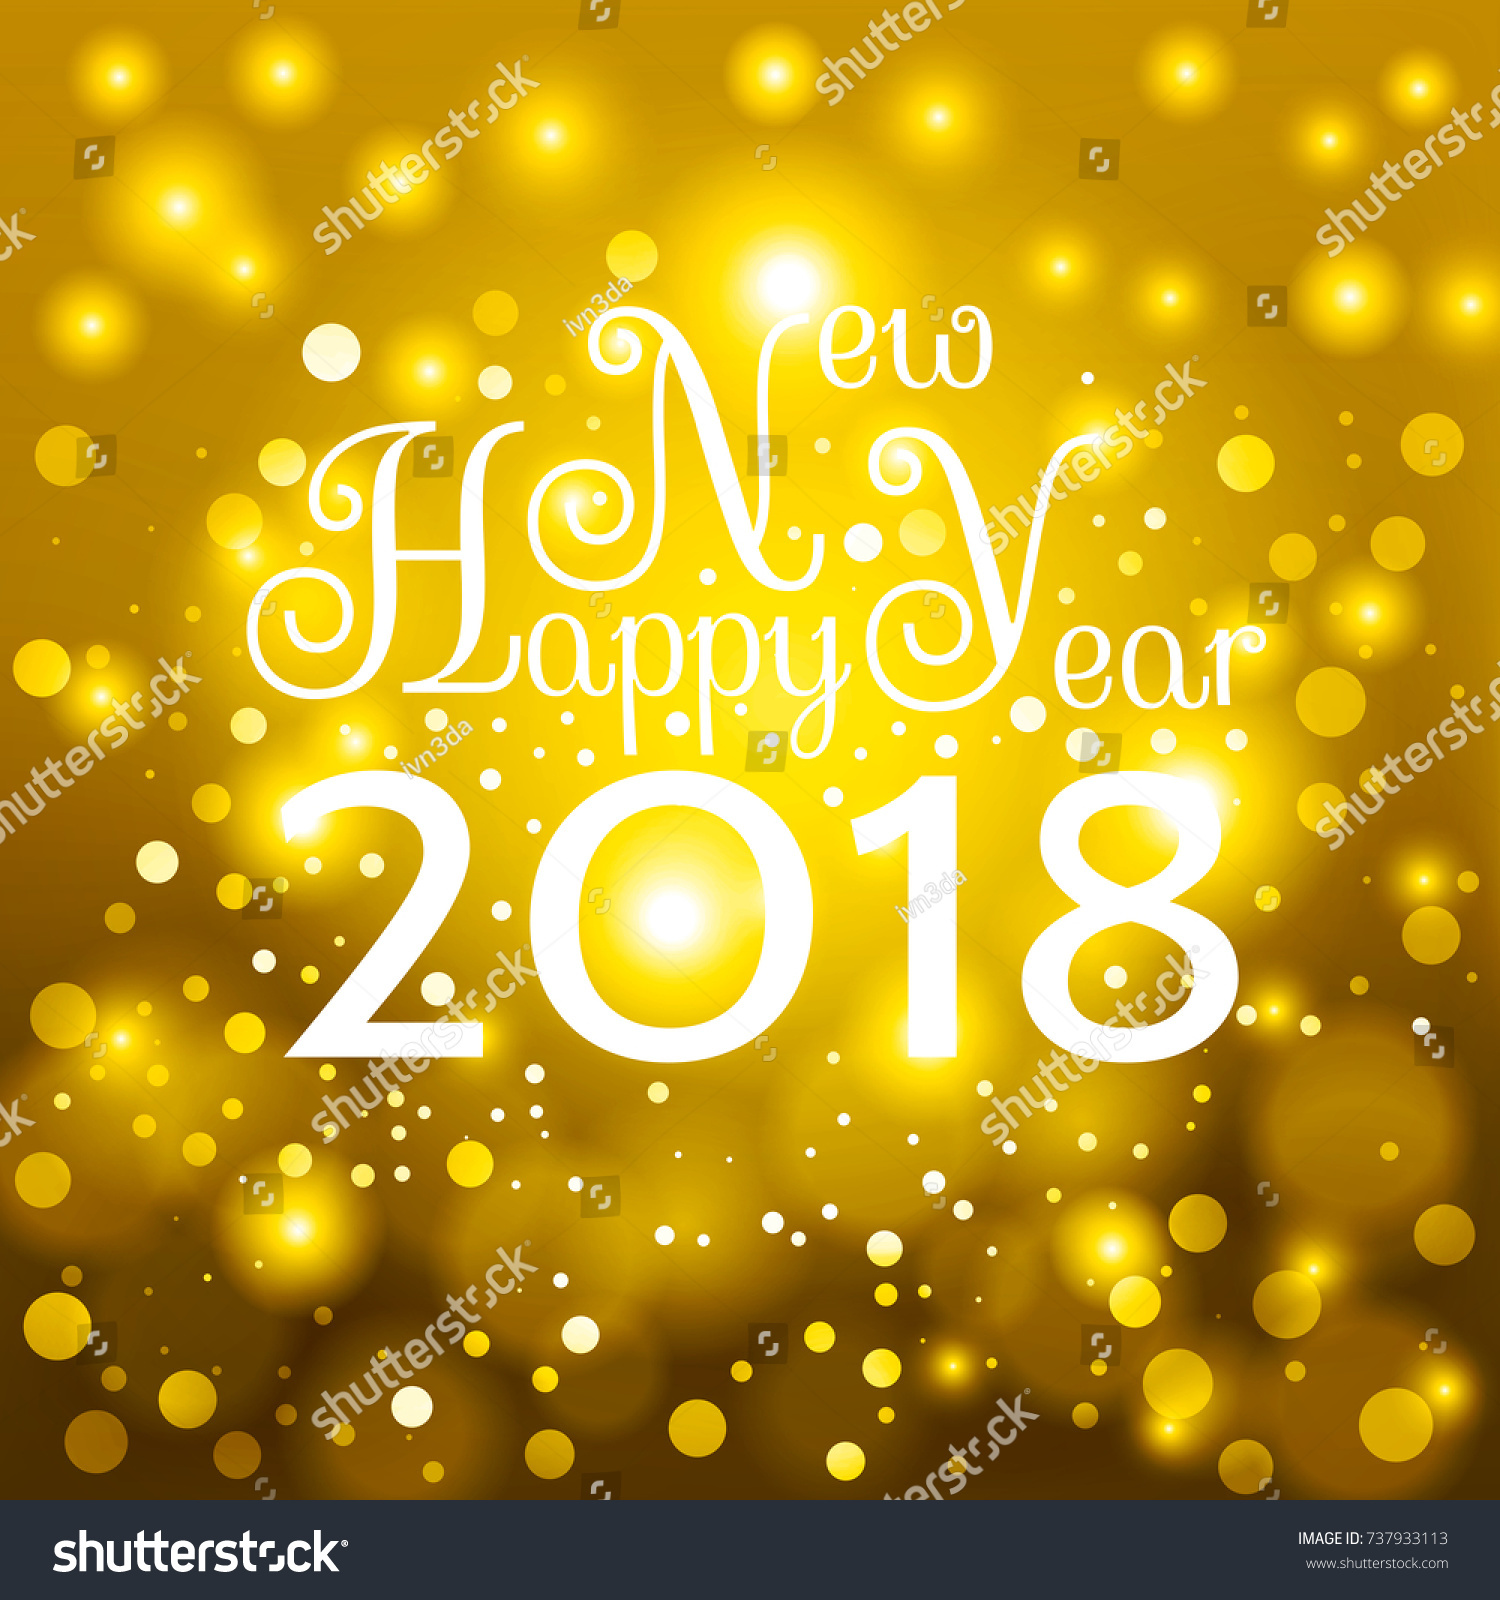 gold happy new year 2018 card nice inscription happy new year 2018 on a beautiful